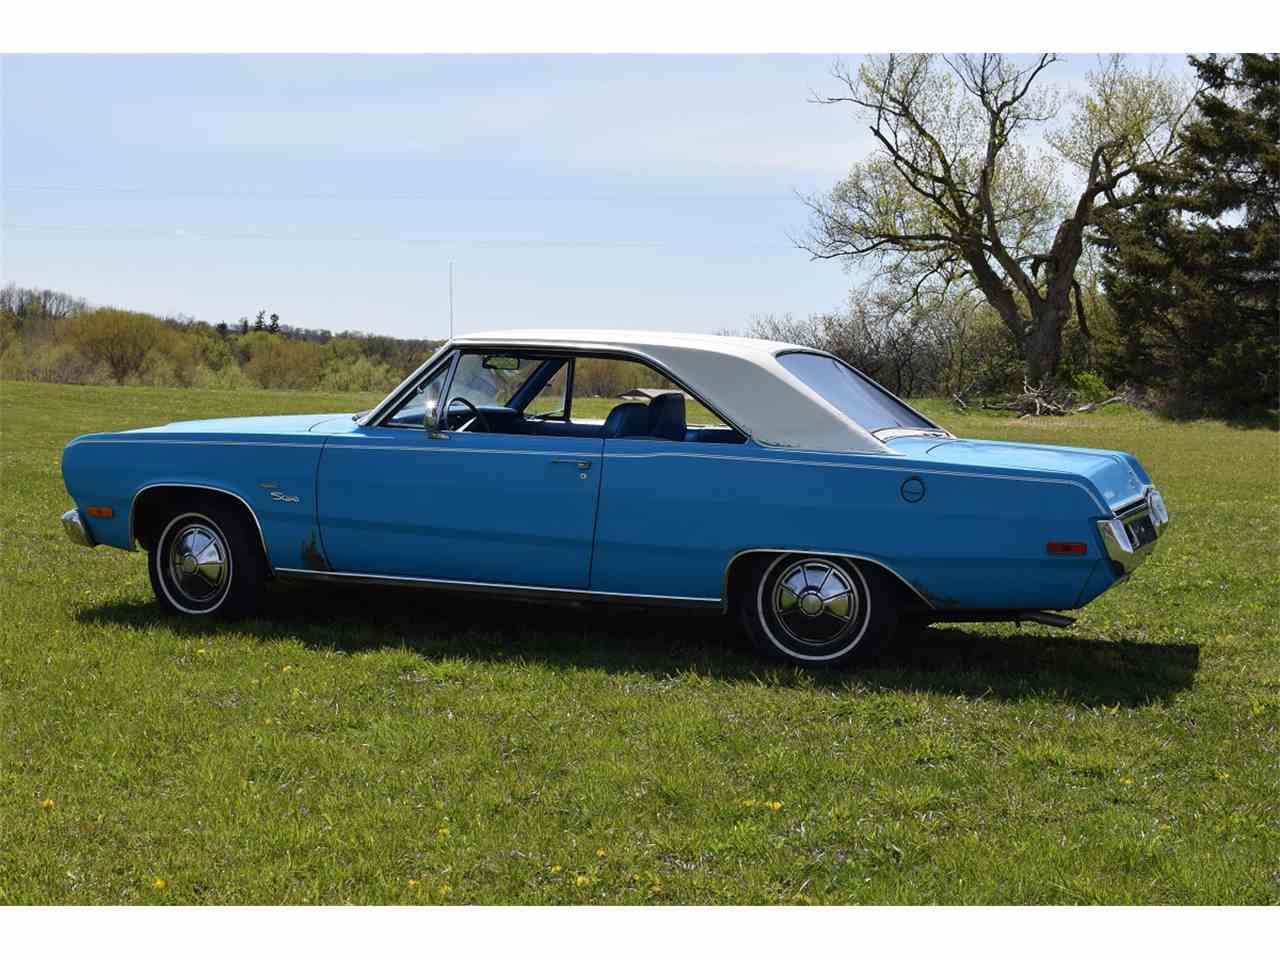 Plymouth Scamp For Sale Scamp Cars For Sale Claz Org 1971